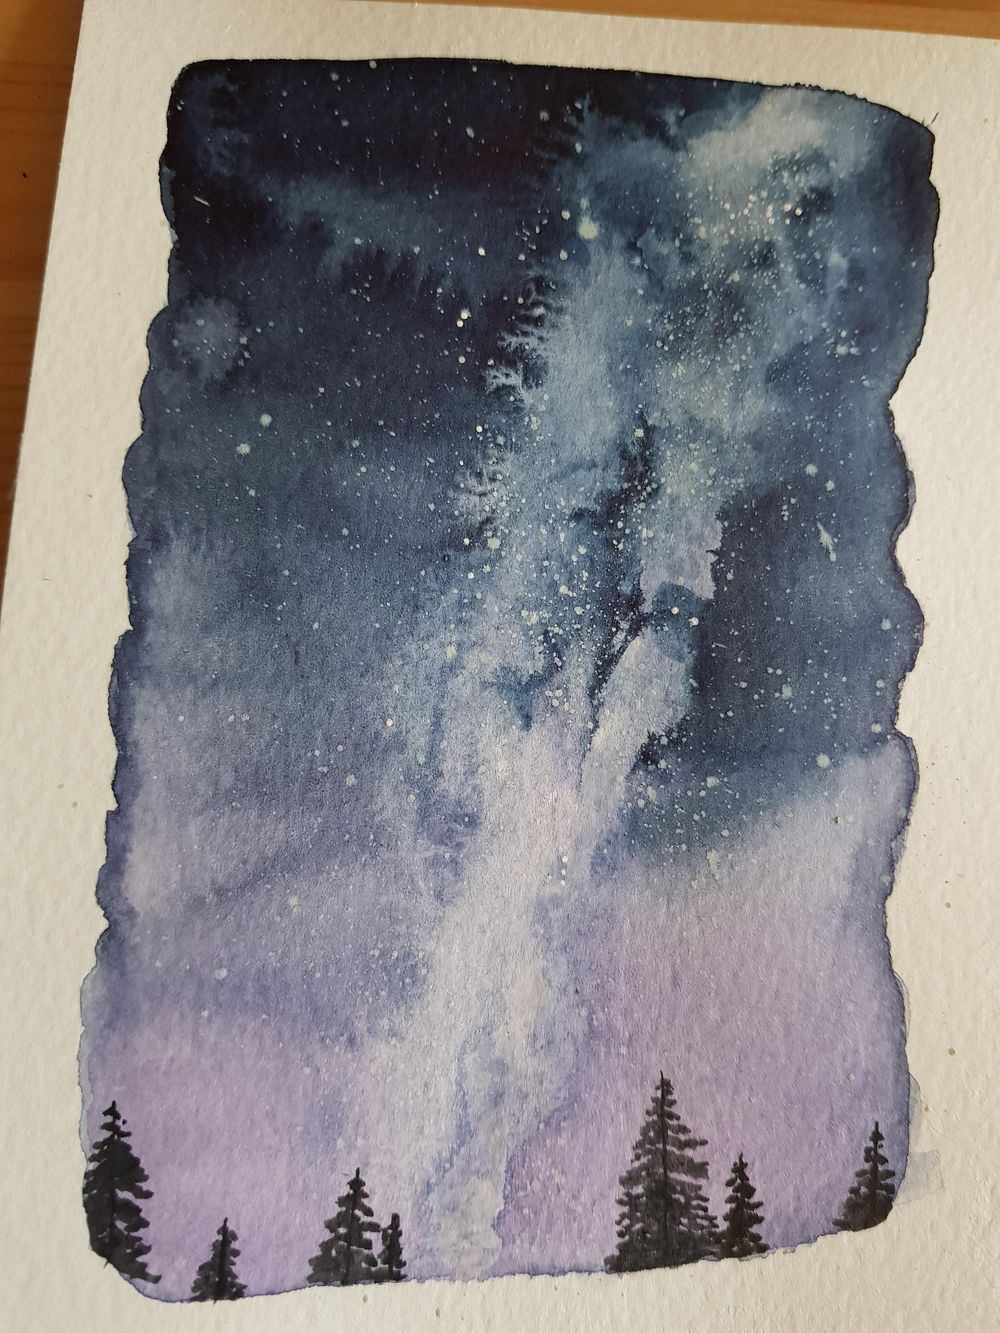 Milky way night sky - image 1 - student project